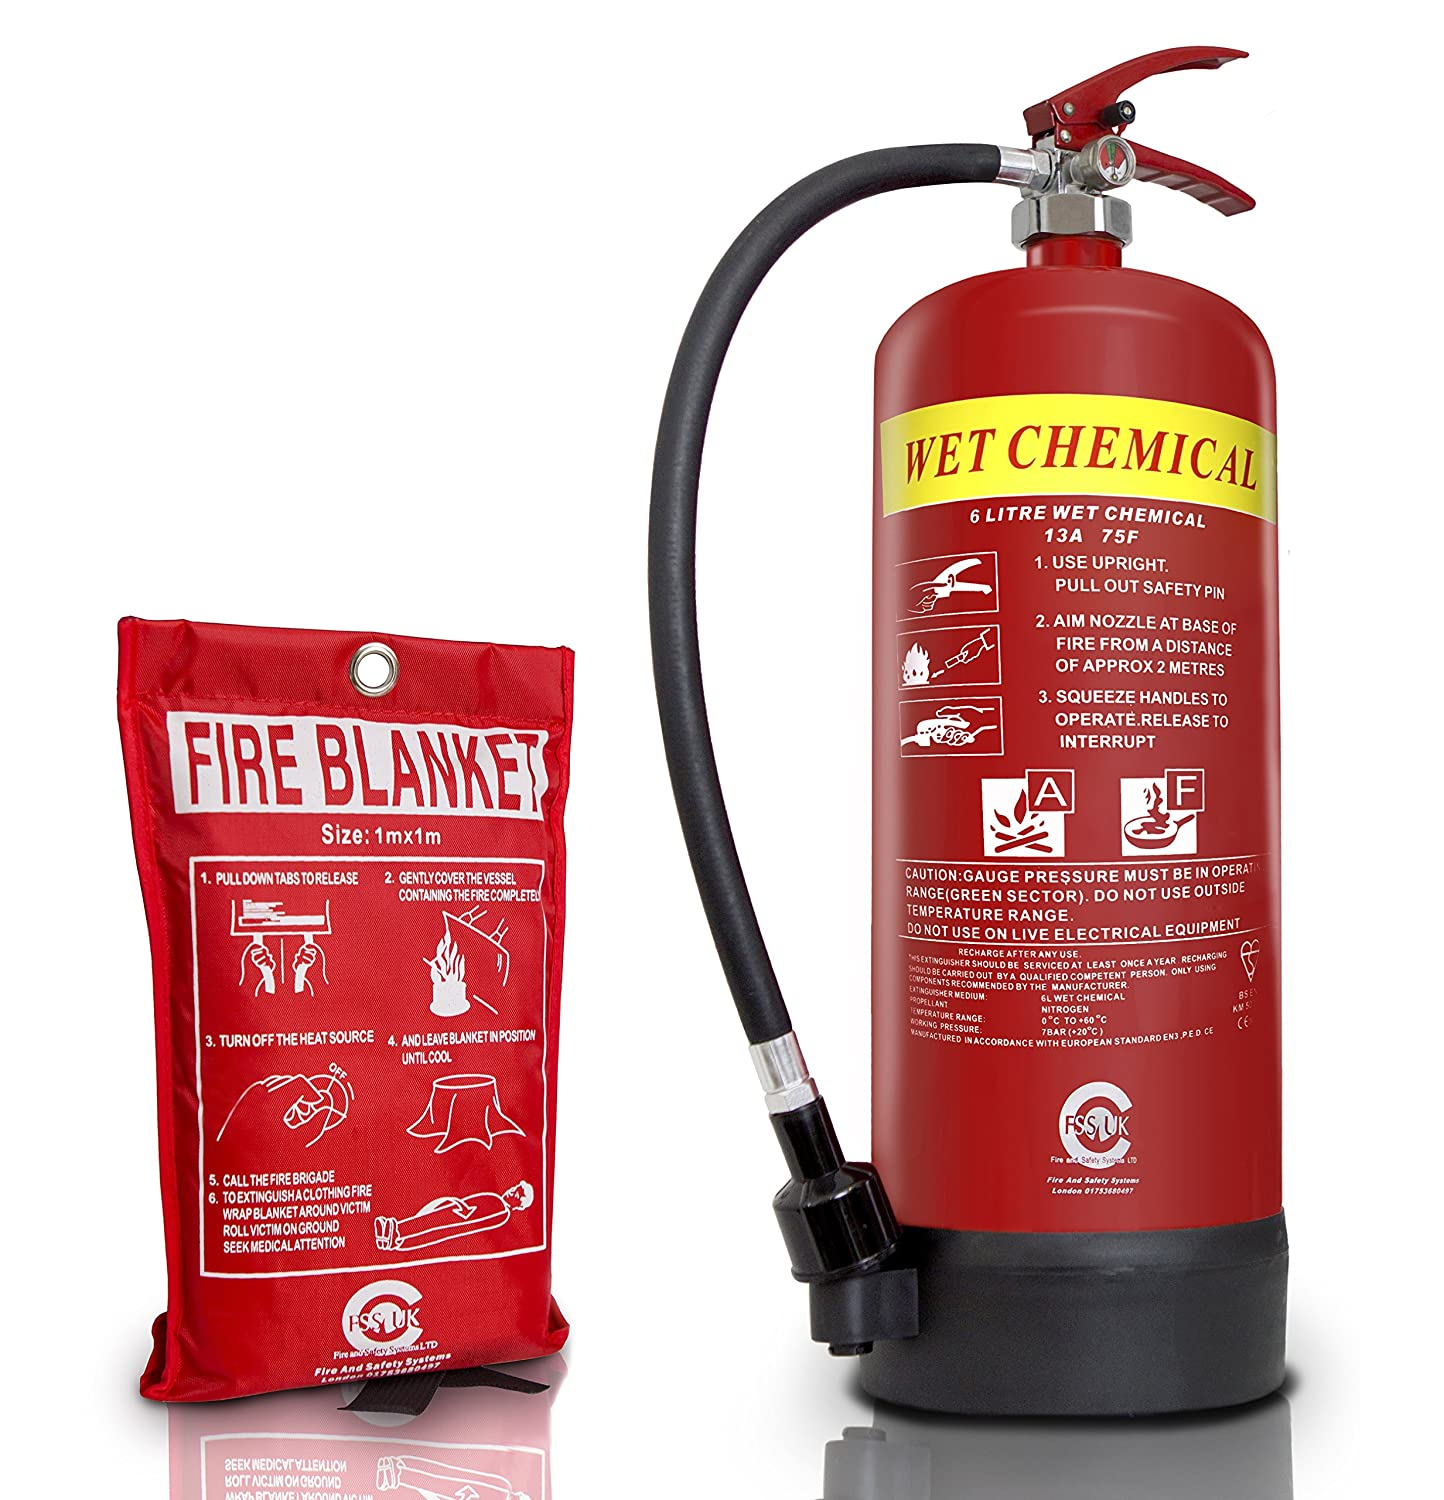 FSS UK PREMIUM 6 LITRE WET CHEMICAL FIRE EXTINGUISHER(BSi KITEMARKED) WITH 1M X 1M FIRE BLANKET(CE). IDEAL FOR COMMERCIAL KITCHEN, RESTAURANTS PUBS BARS COOKING FIRES. 6 L LTR WET CHEM